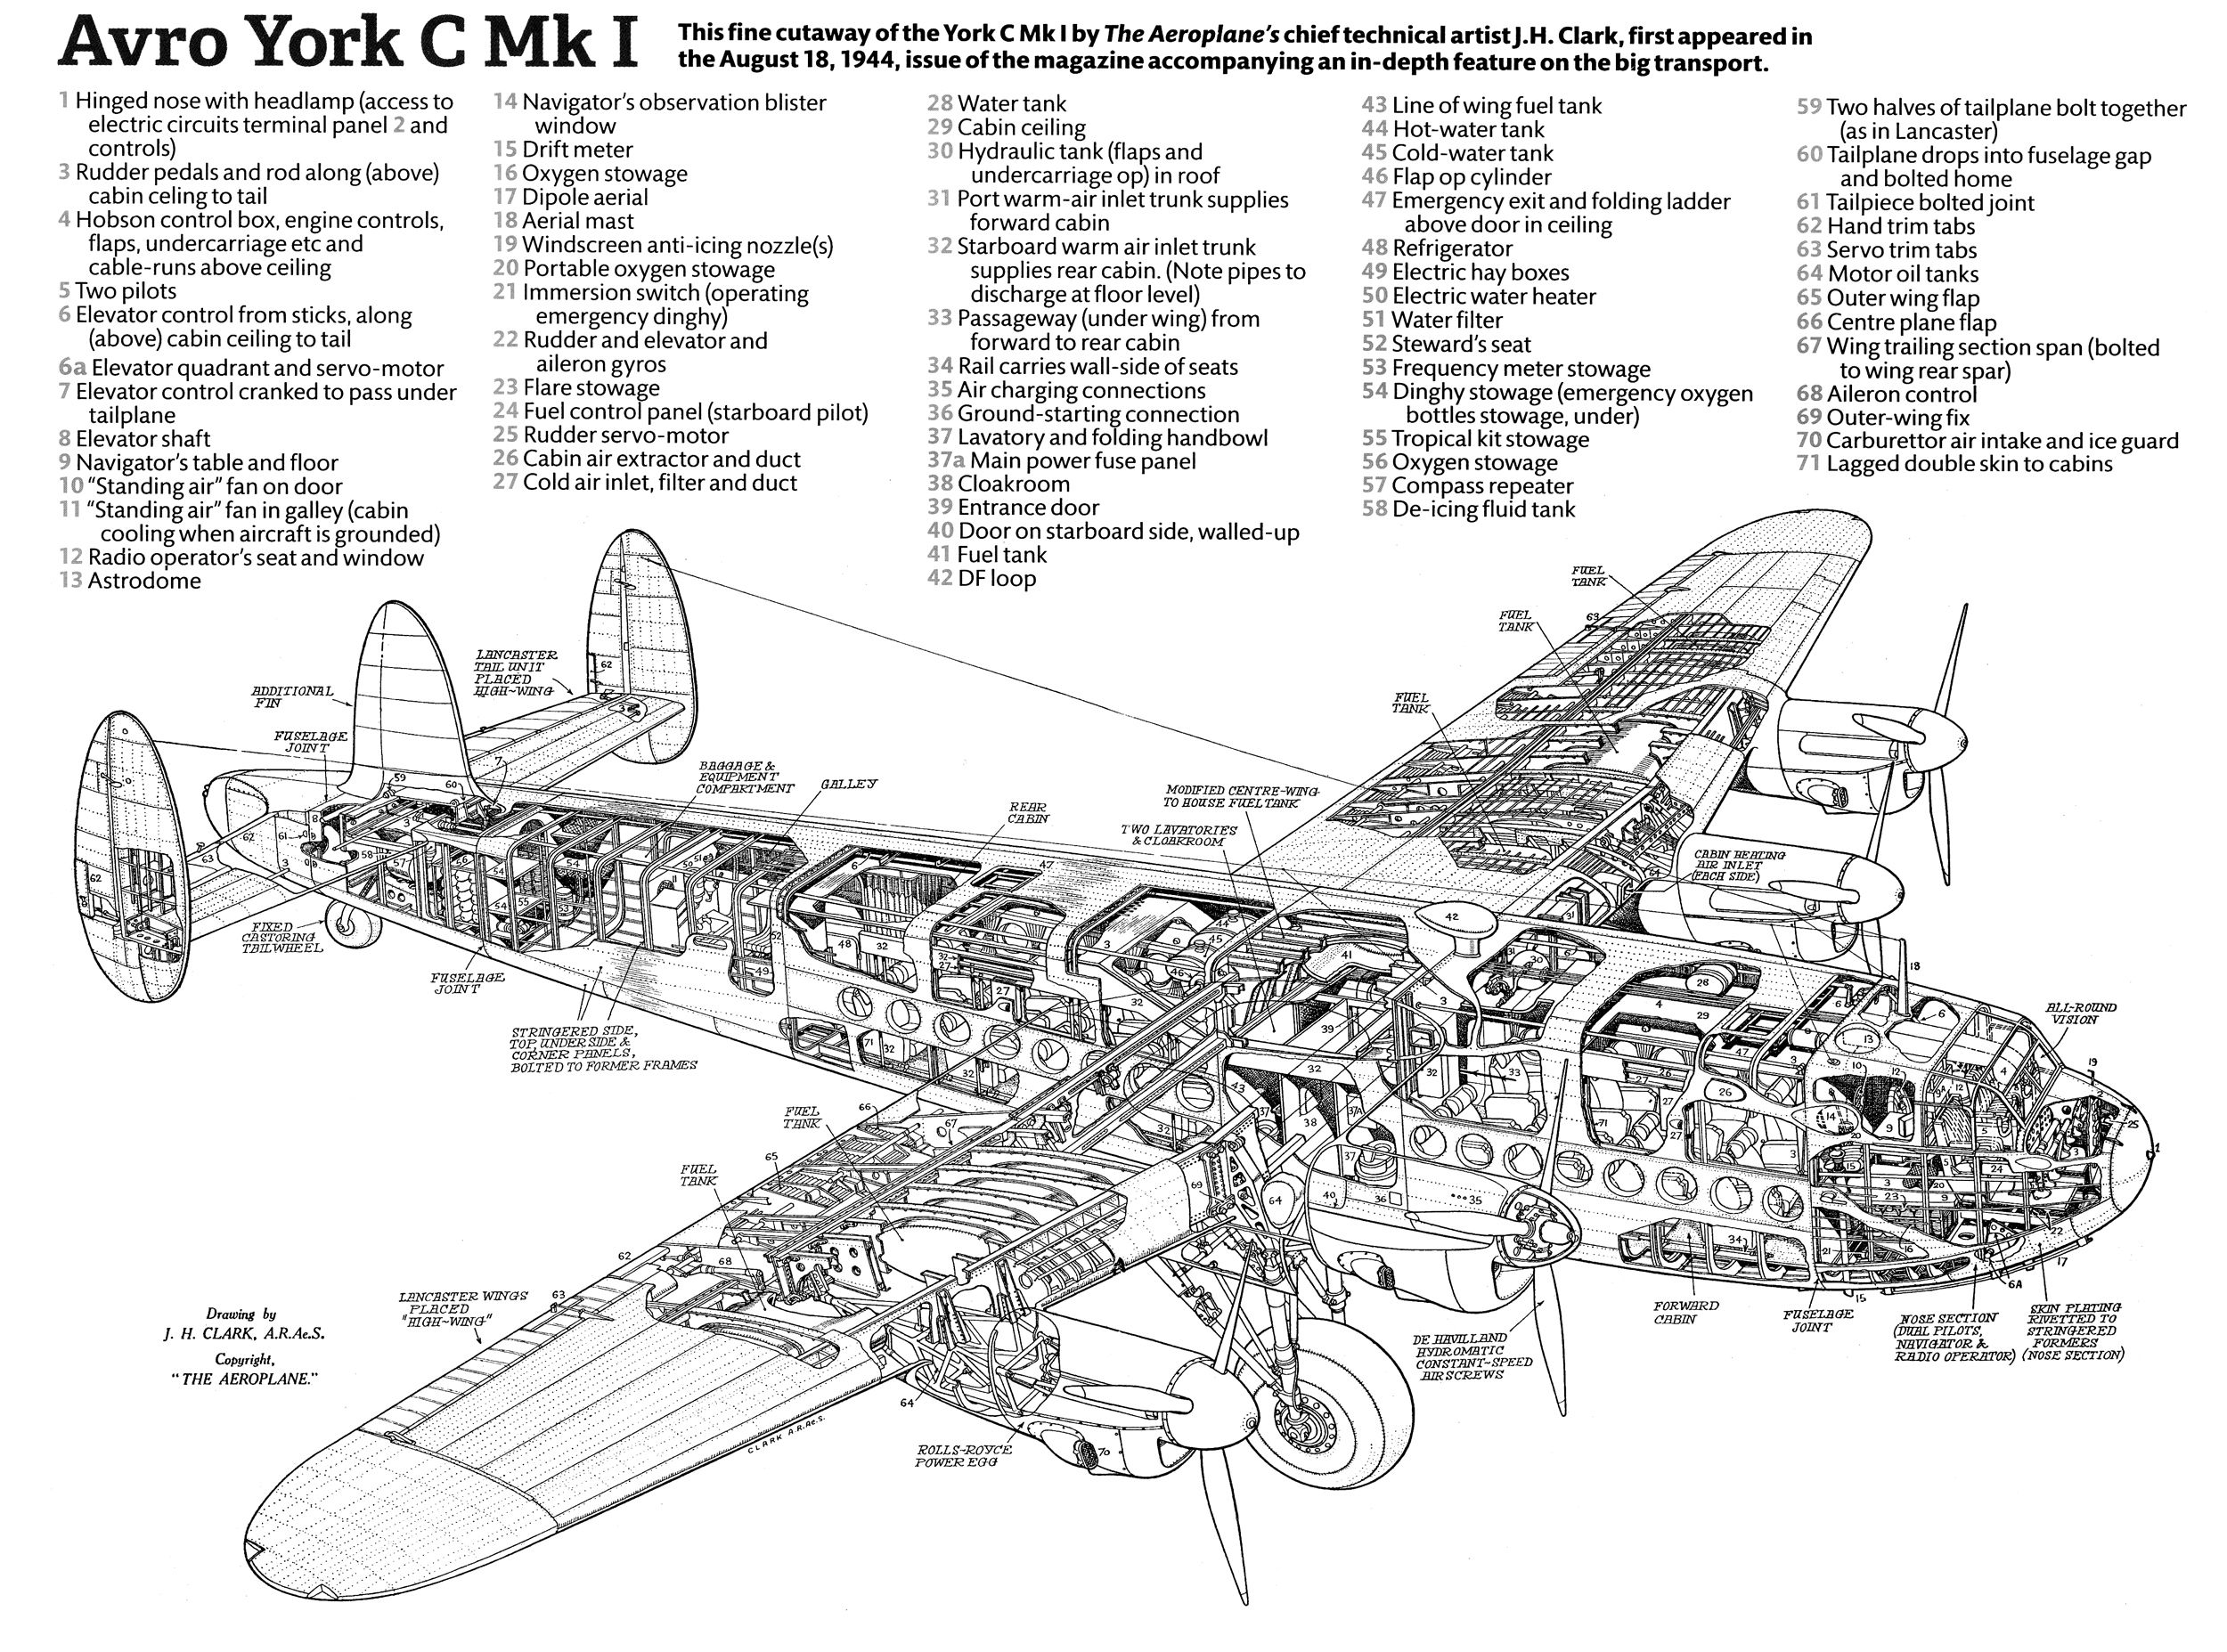 Image result for Air Transport Command Avro York